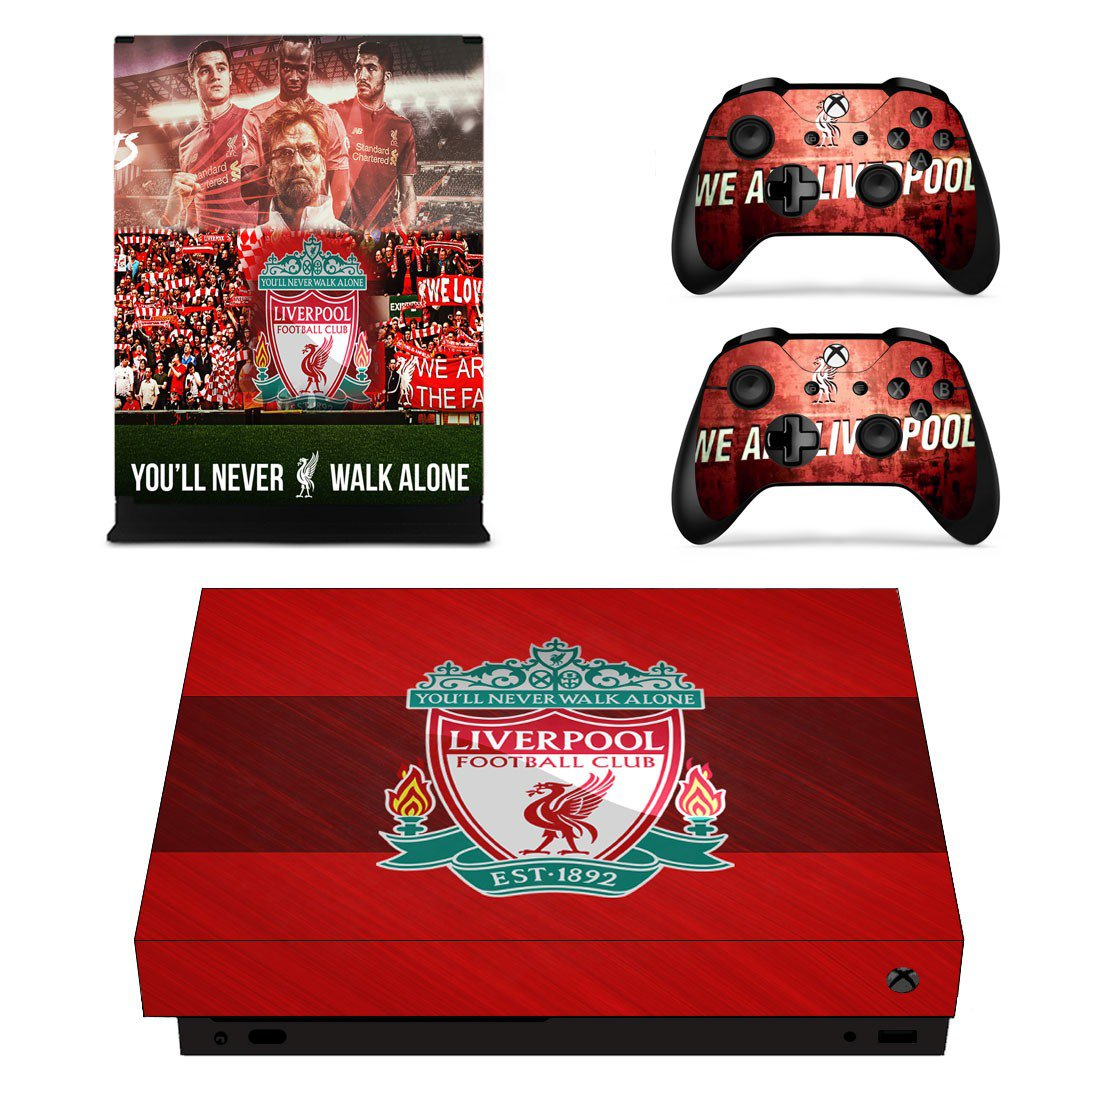 Liverpool xbox one X skin decal for console and 2 controllers